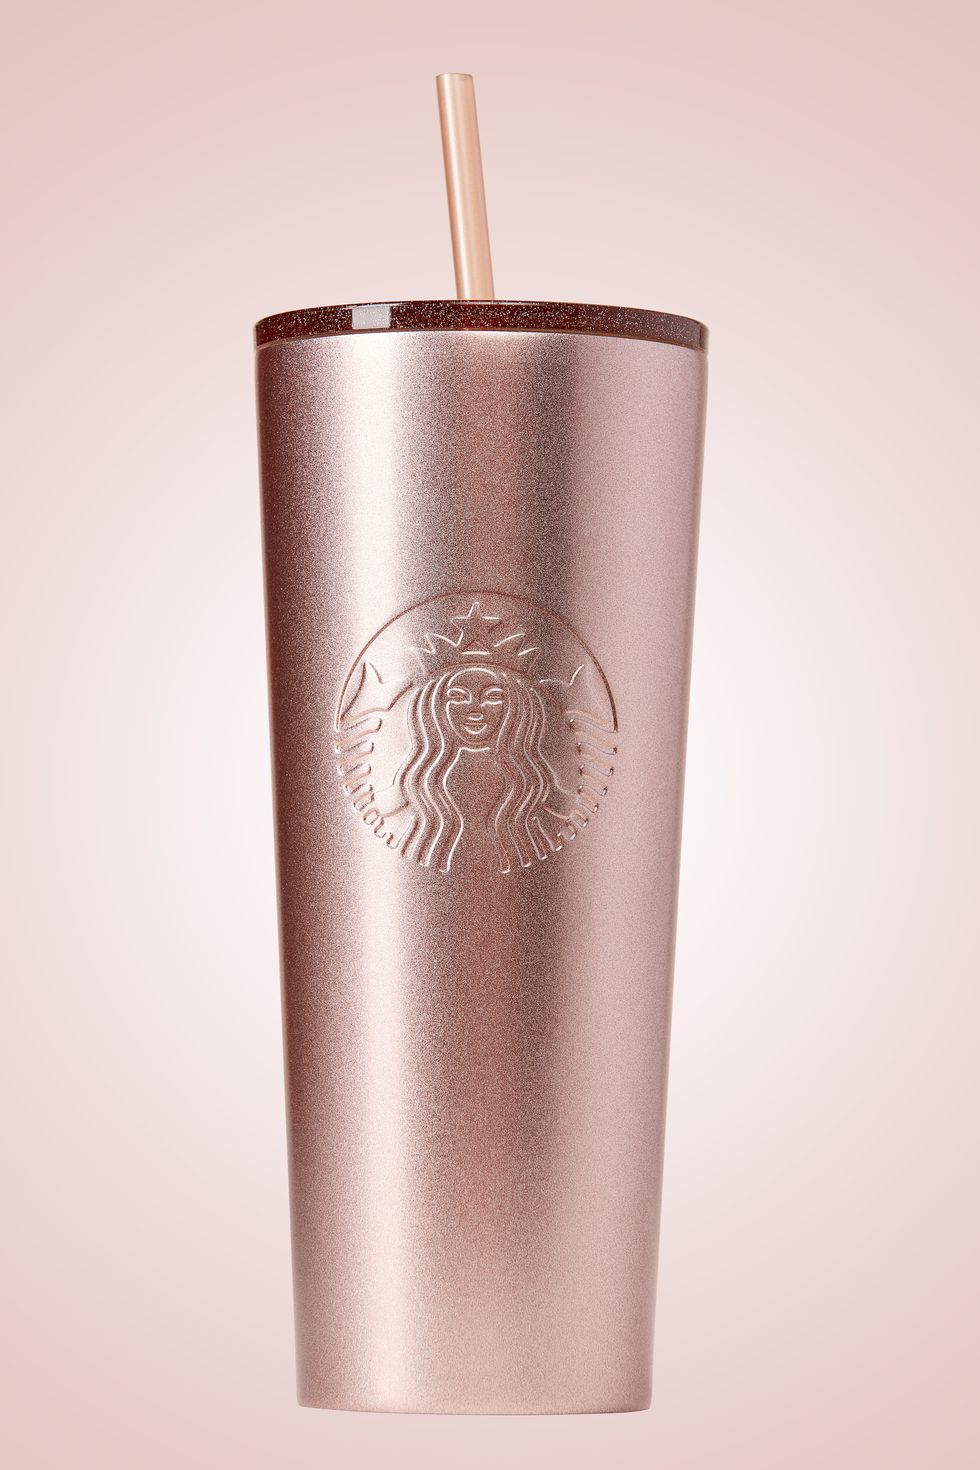 Starbucks Launches Its 2018 Christmas Line Of Tumblers And